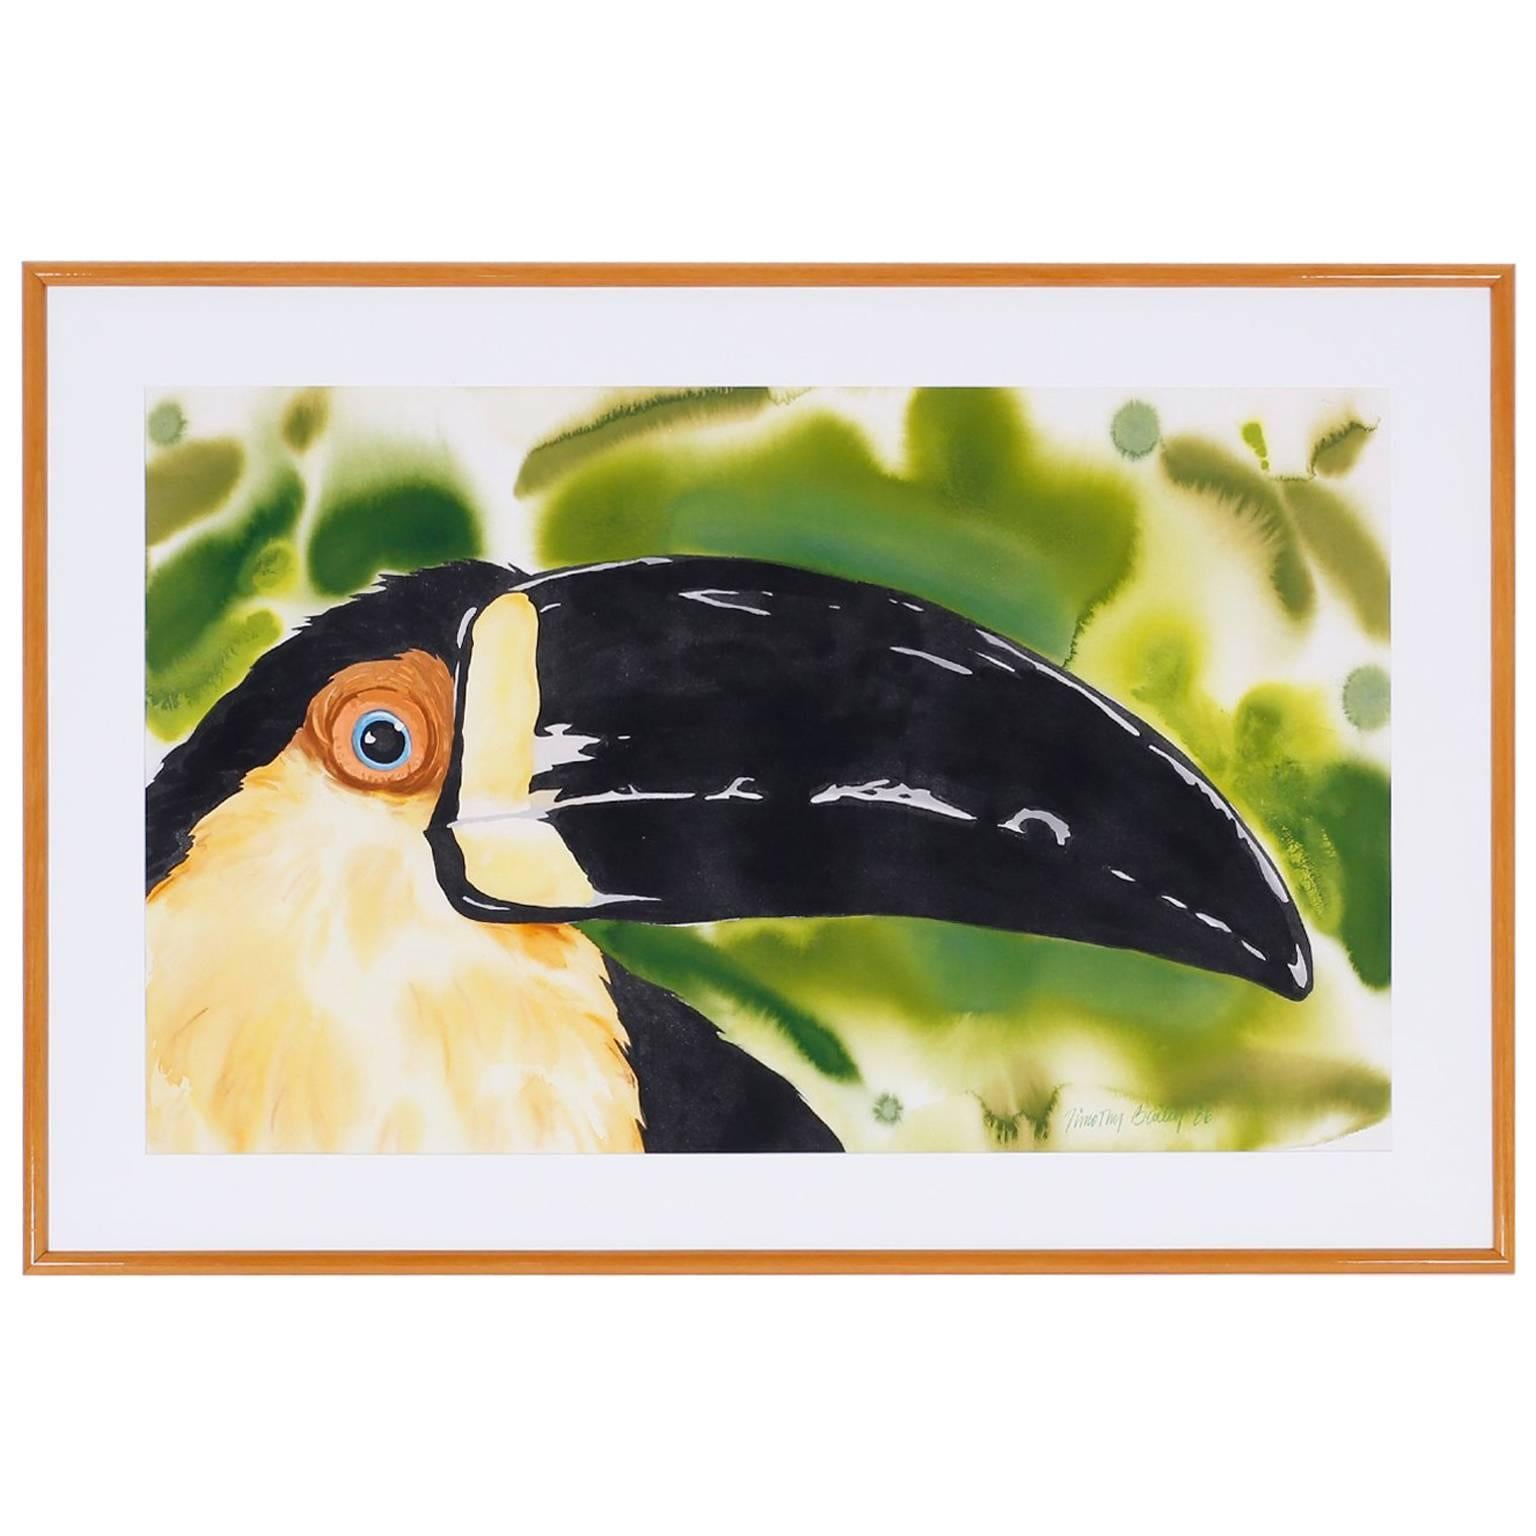 Large Watercolor Painting of a Toucan